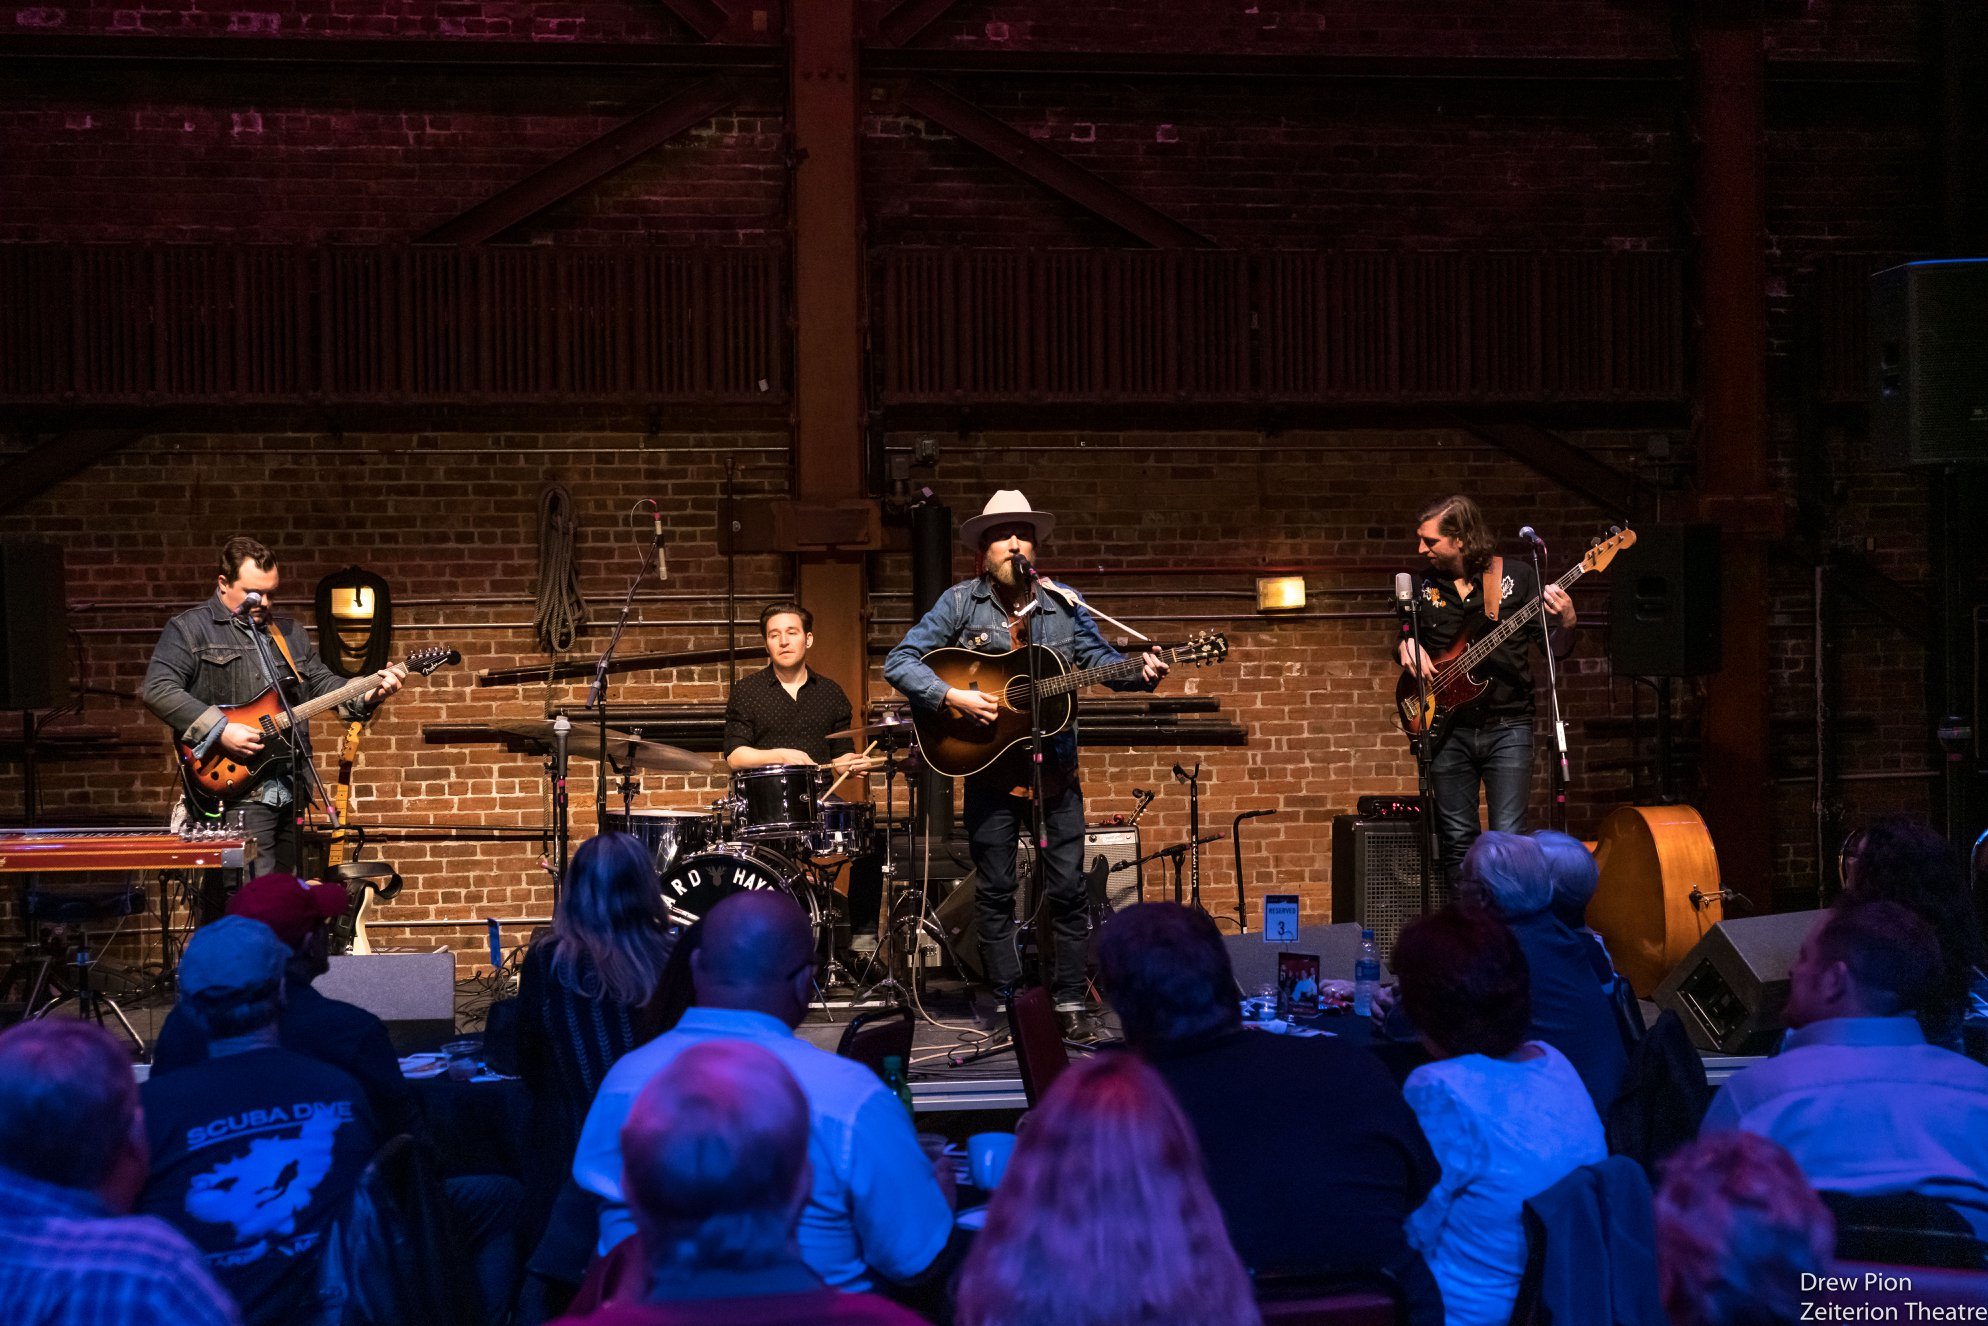 Ward Hayden and The Outliers at Stage Door Live, Zeiterion Performing Arts Center